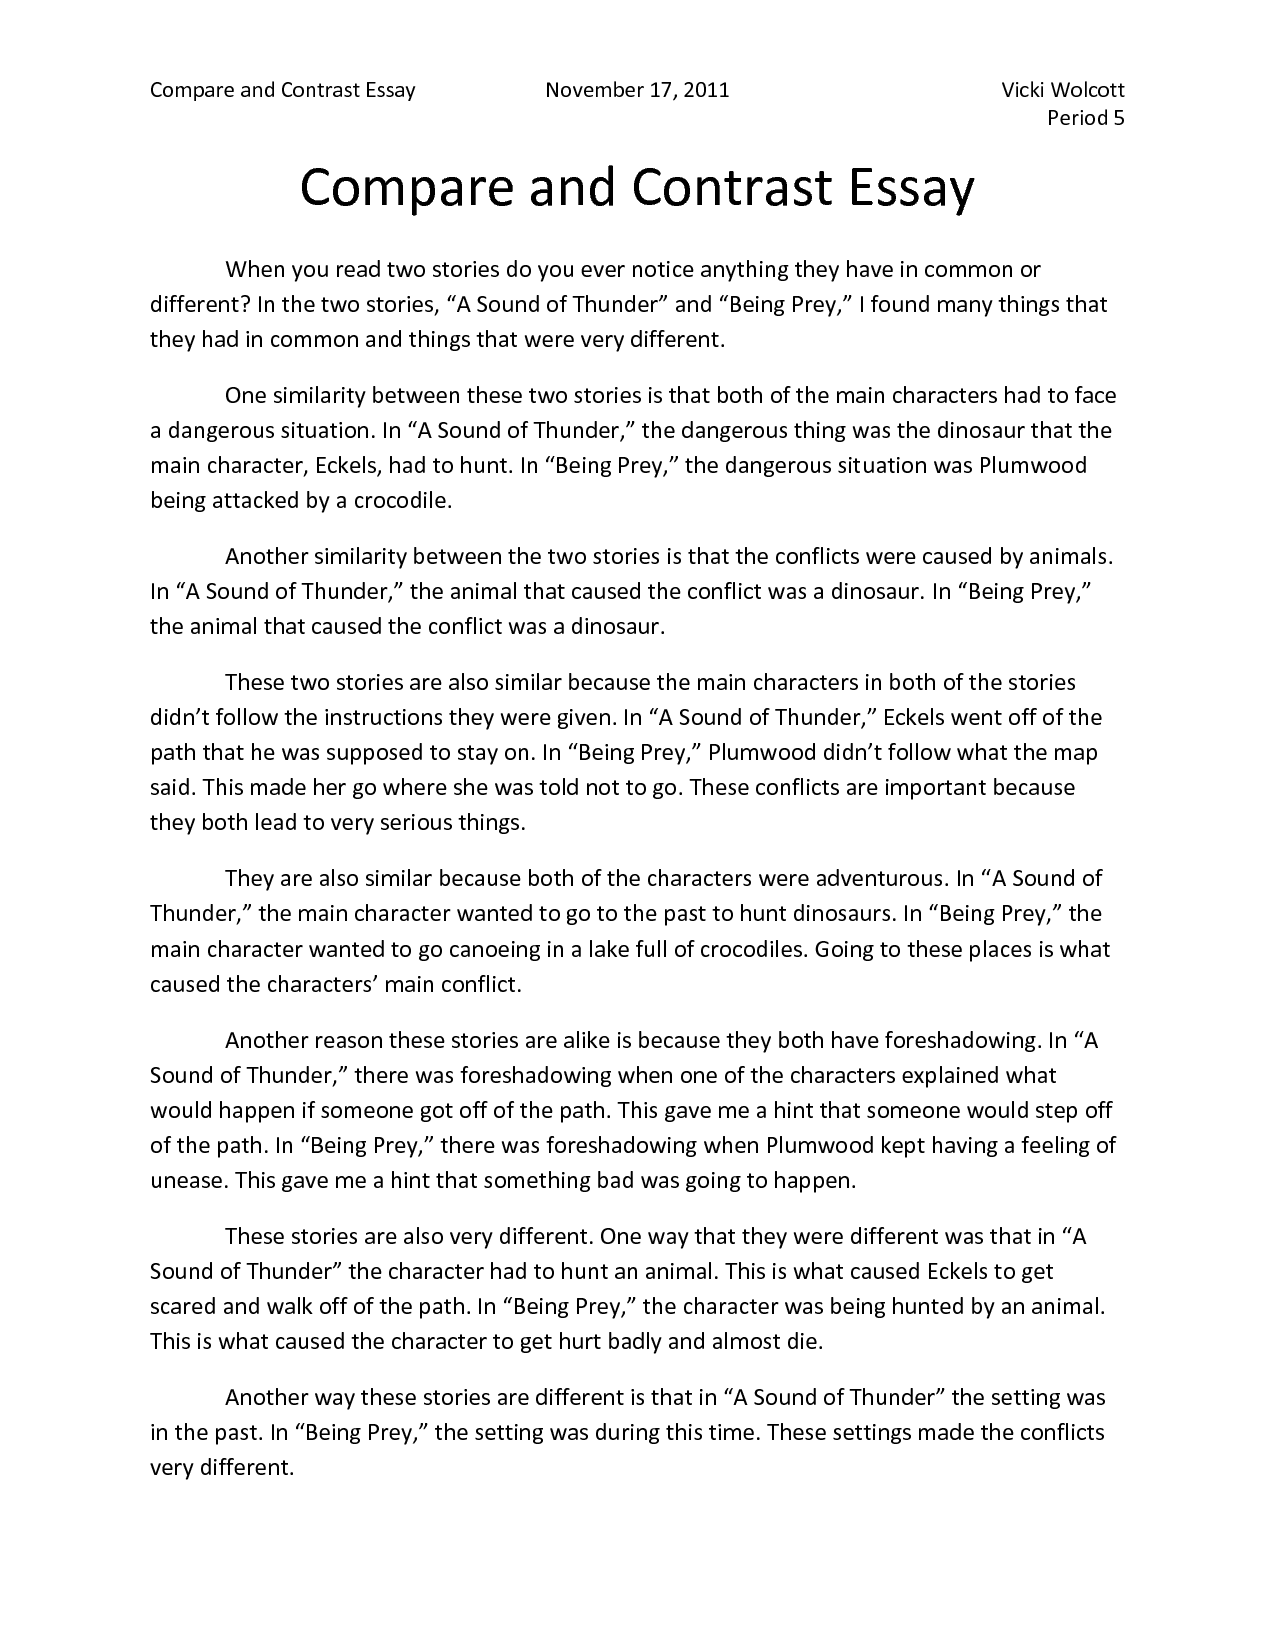 002 Essay Example Compare And Contrast Basic Unforgettable Ideas For 5th Grade Funny Title Full